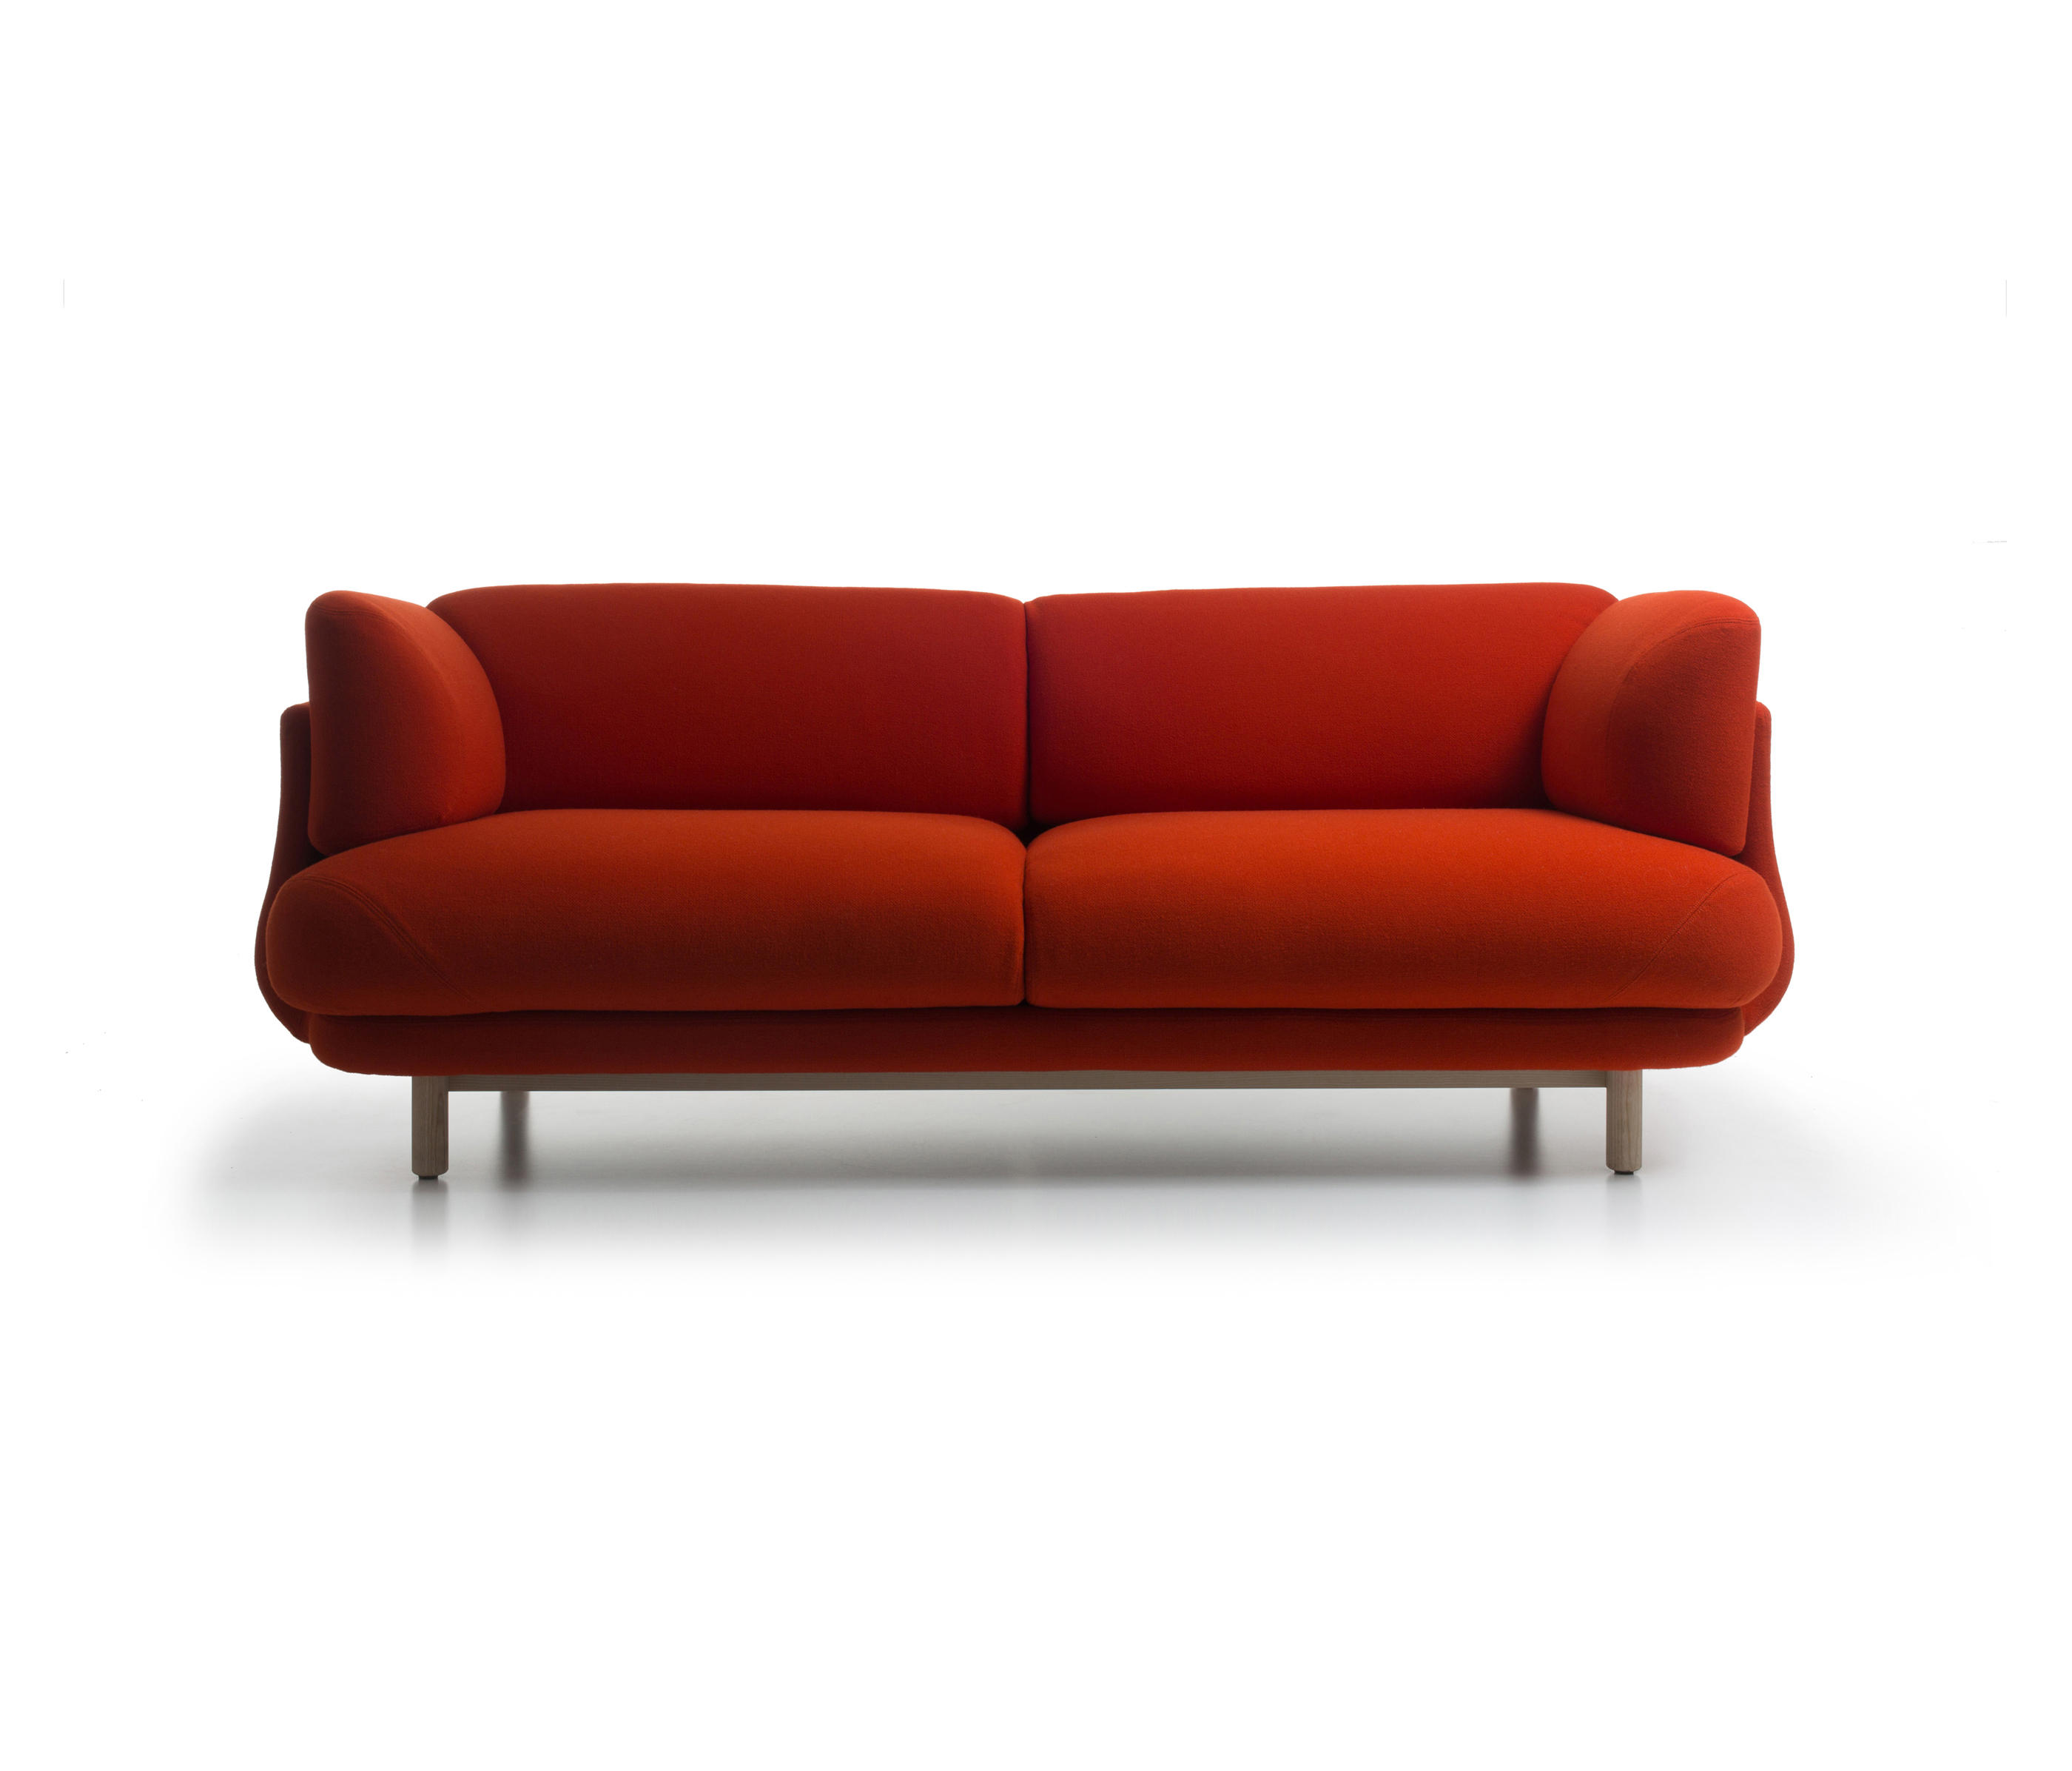 PEG SOFA Lounge sofas from Cappellini